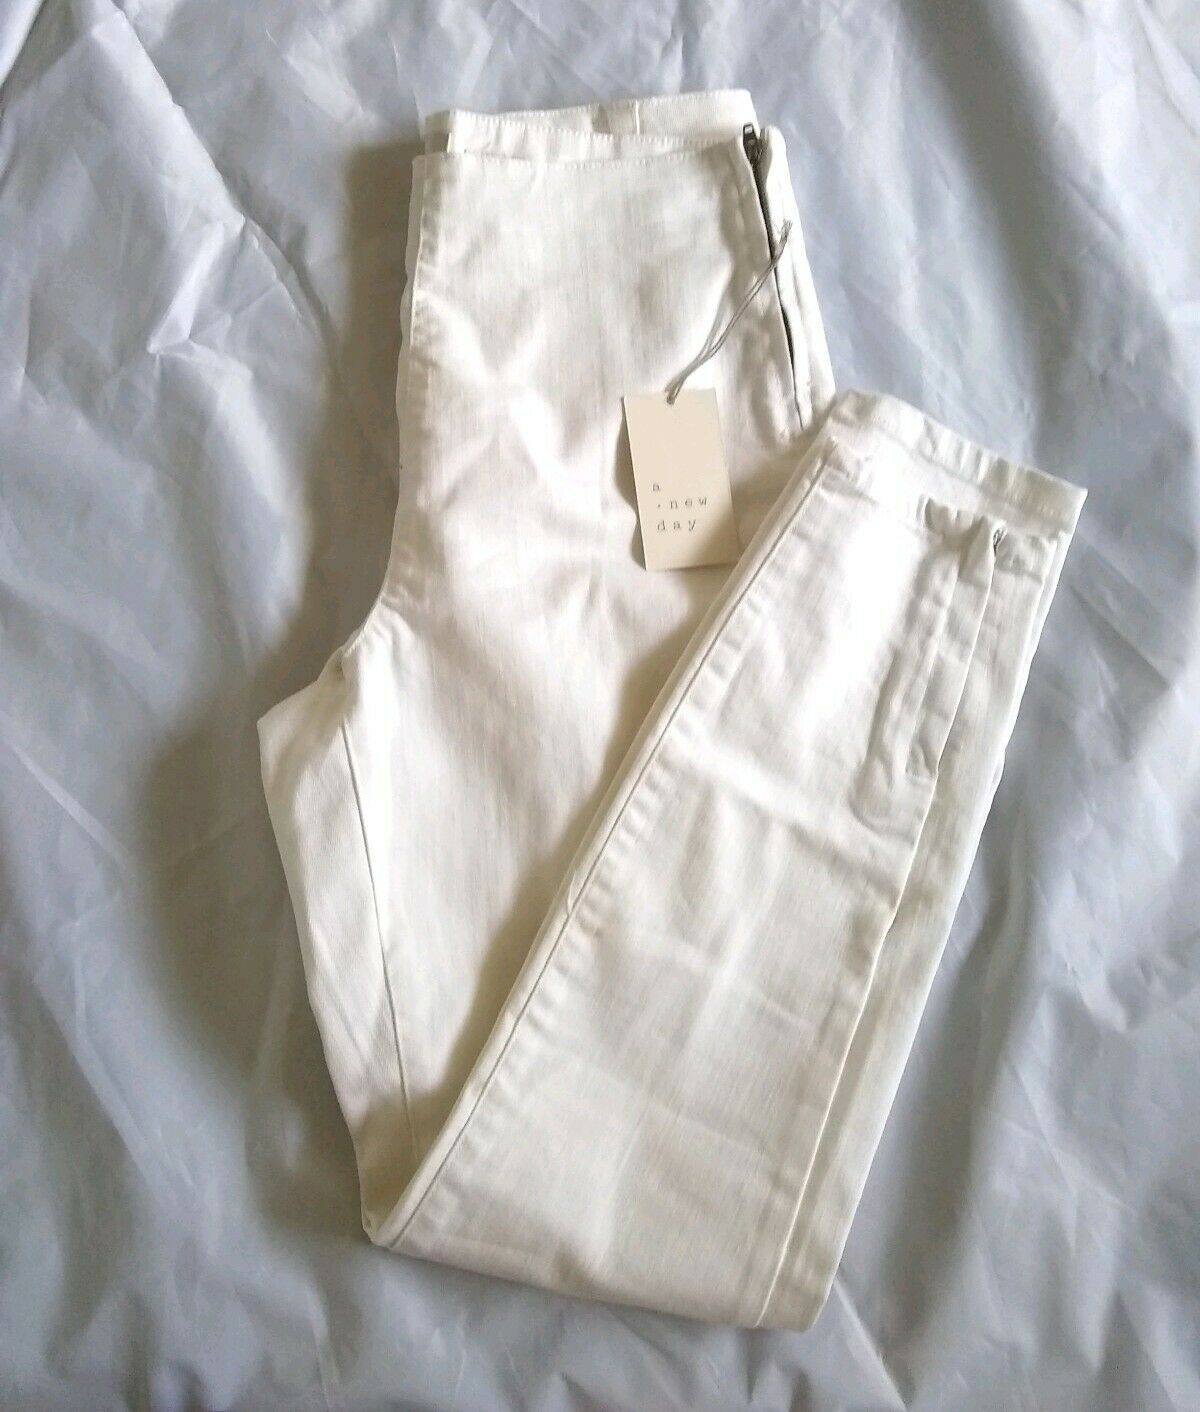 Primary image for a new day Women's Side-zip Regular Fit High-Rise Skinny White Ankle Pants Size 8